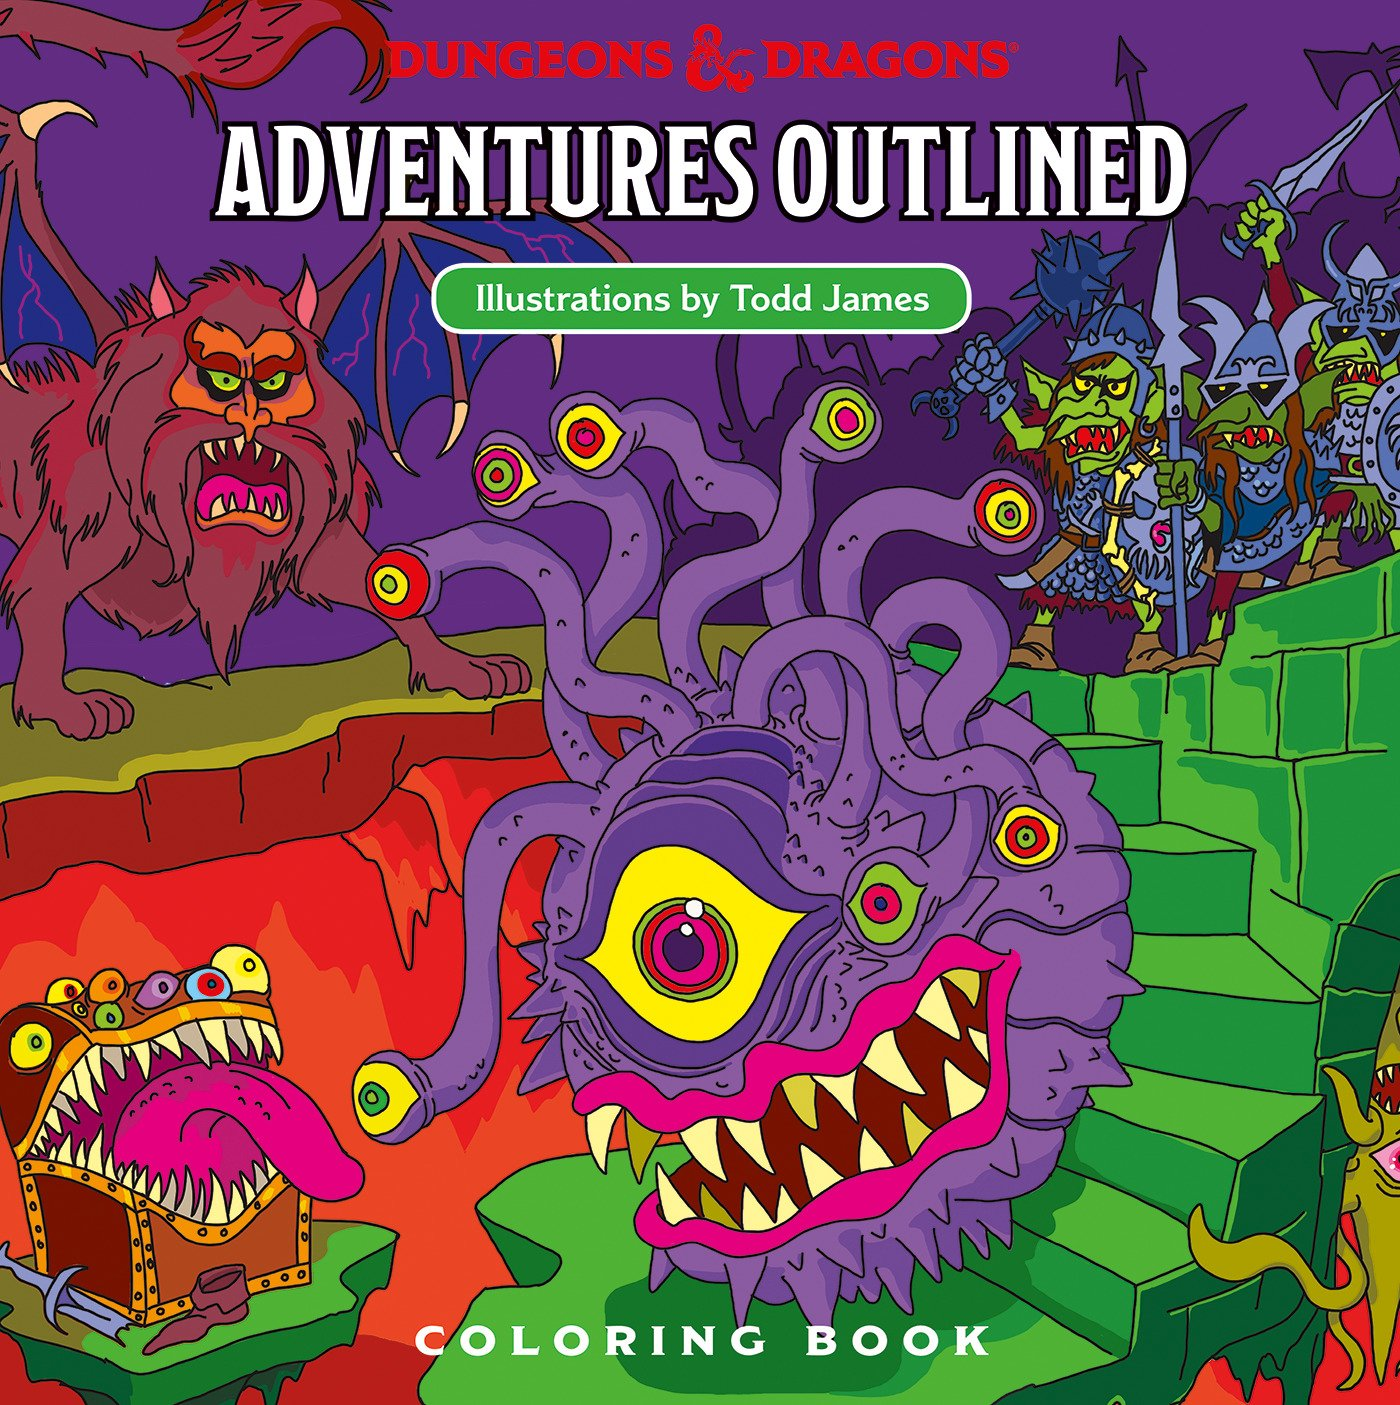 Amazon Com Dungeons Dragons Adventures Outlined Coloring Book 9780786966646 Wizards Rpg Team James Todd Books